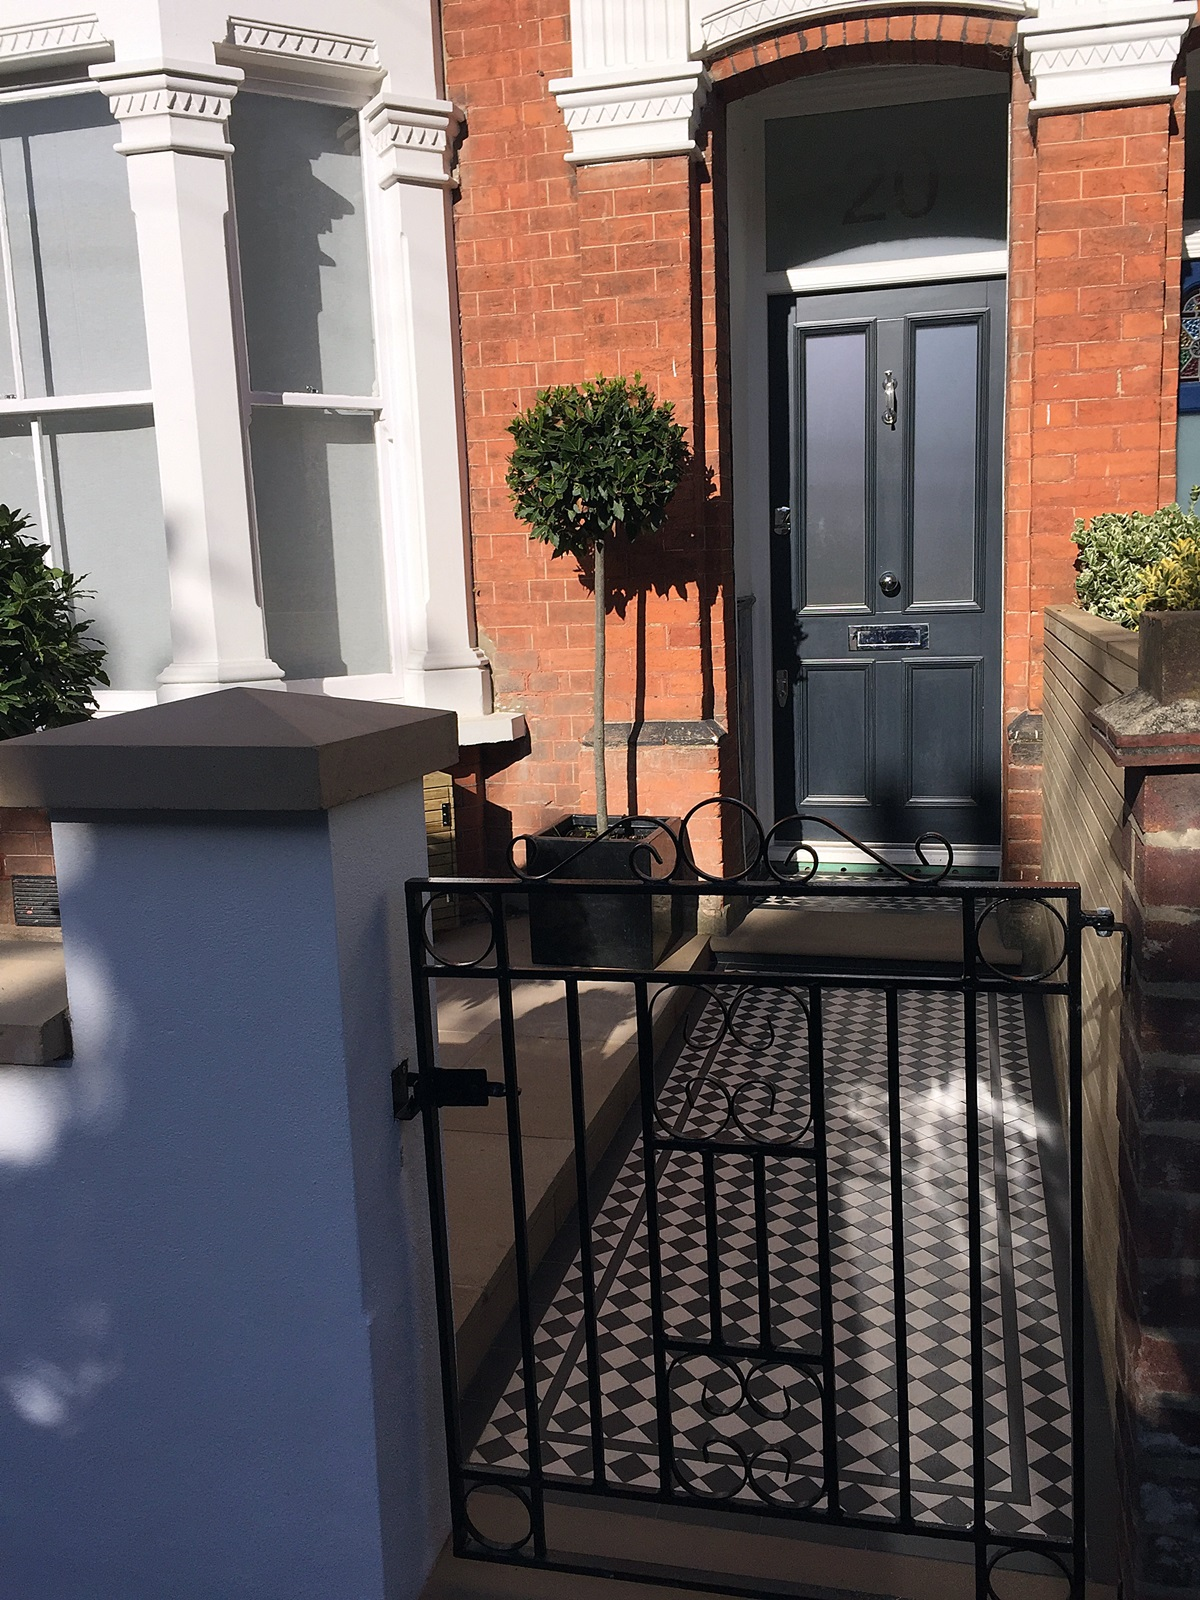 London Front Garden Wall Metal Rail And Gate York Stone Entrance Stone  Black And White Victorian ...